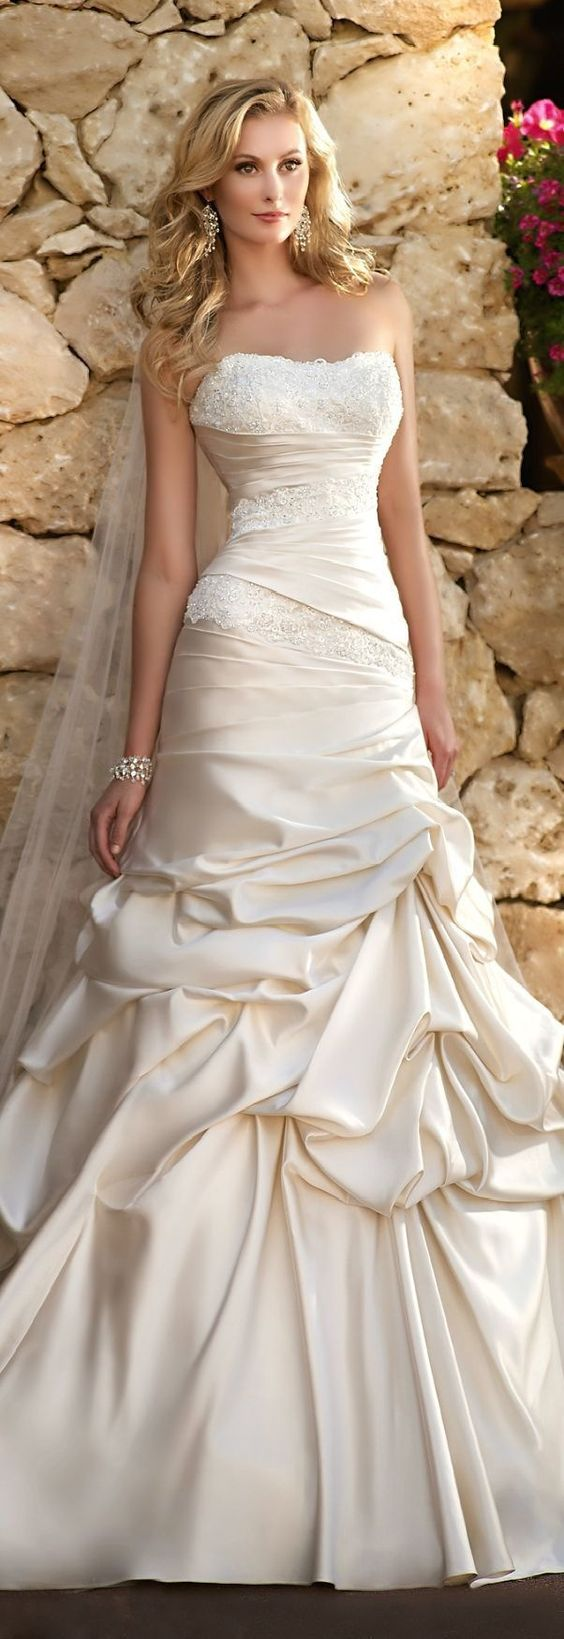 Exquisite Satin & Lace Cascading Ruffle Wedding Dress ♥ /ceremony-music/wedding-hymns/ /ceremony-music/wedding-hymns/catholic-wedding-hymns/ /wedding-she